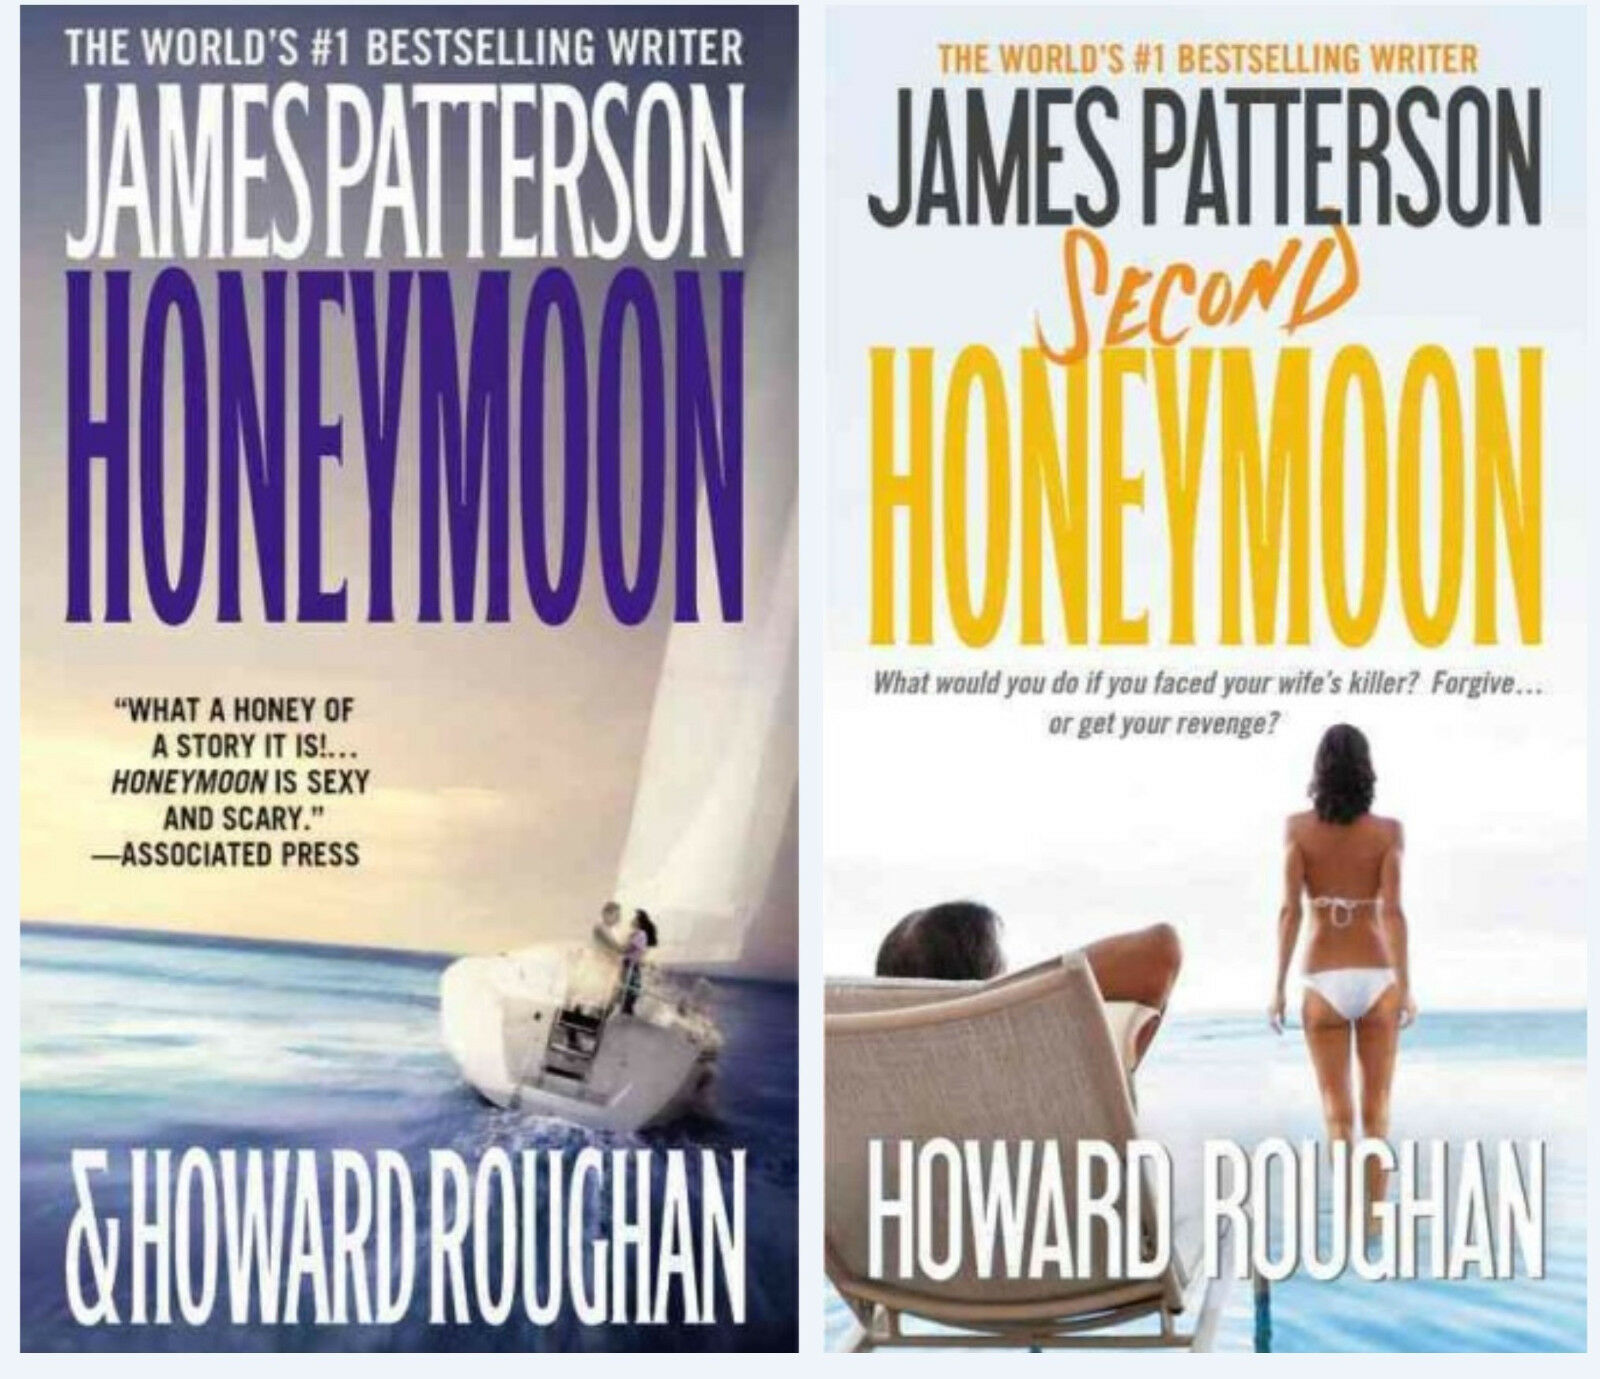 """Image for """"James Patterson HONEYMOON Paperback Series 1-2! by Patterson, James"""""""